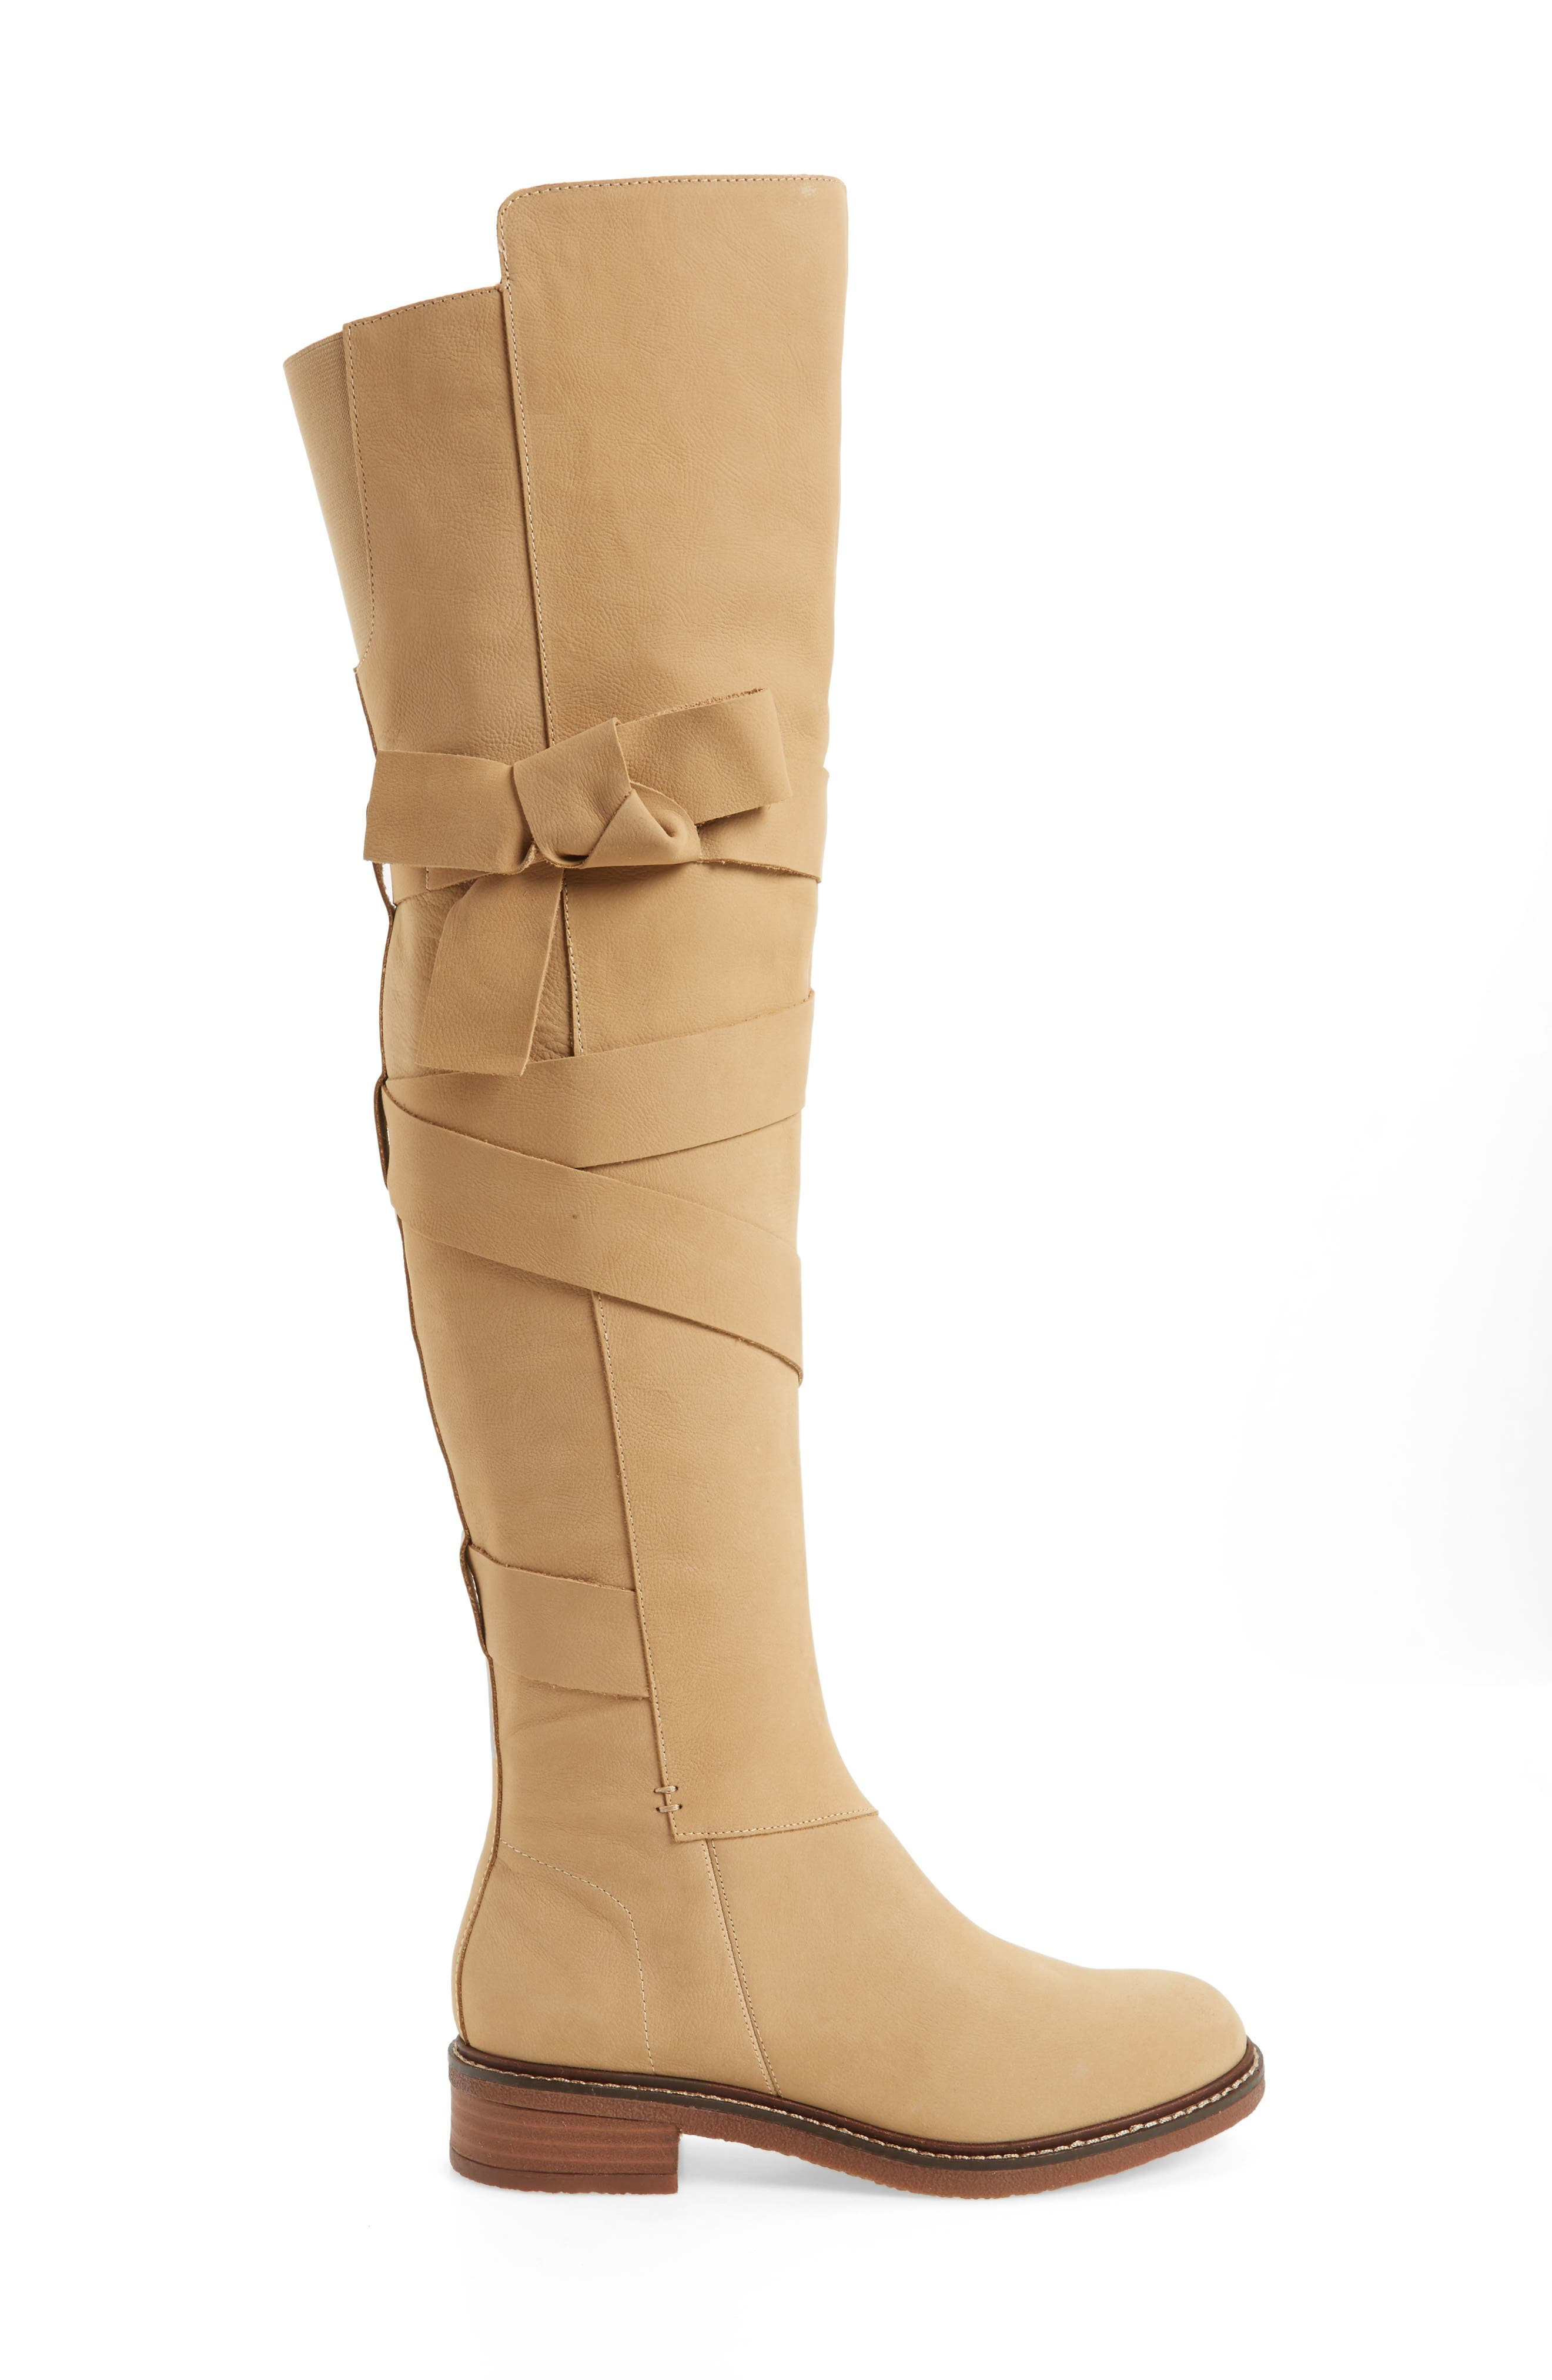 Colby Over the Knee Boot,                             Alternate thumbnail 3, color,                             Ginger